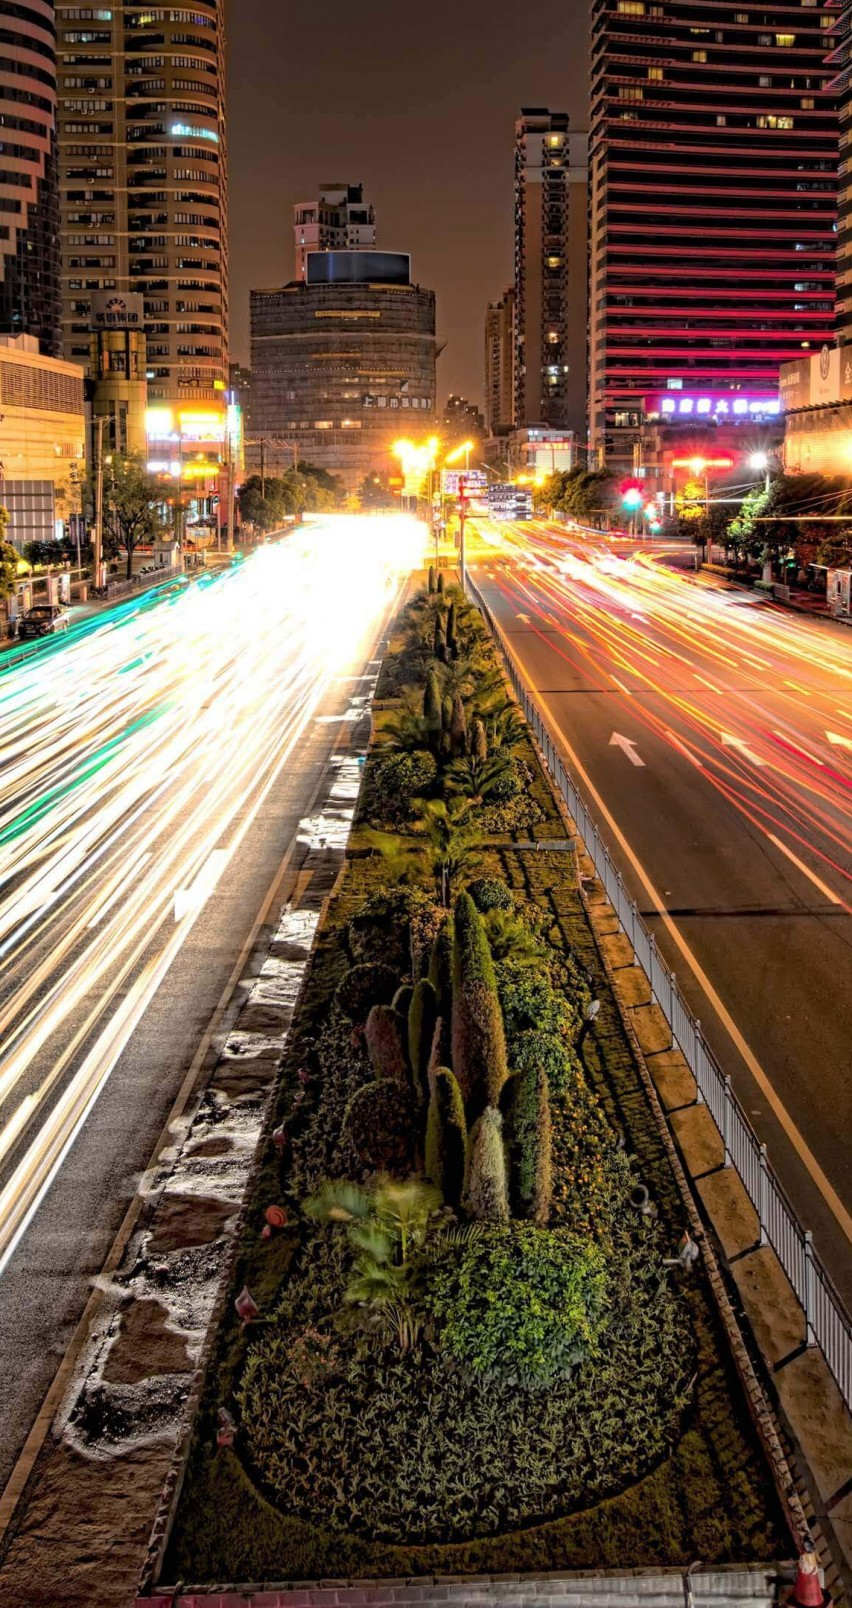 Busy Road in Shanghai at Night Wallpaper for Apple iPhone 6 / 6s